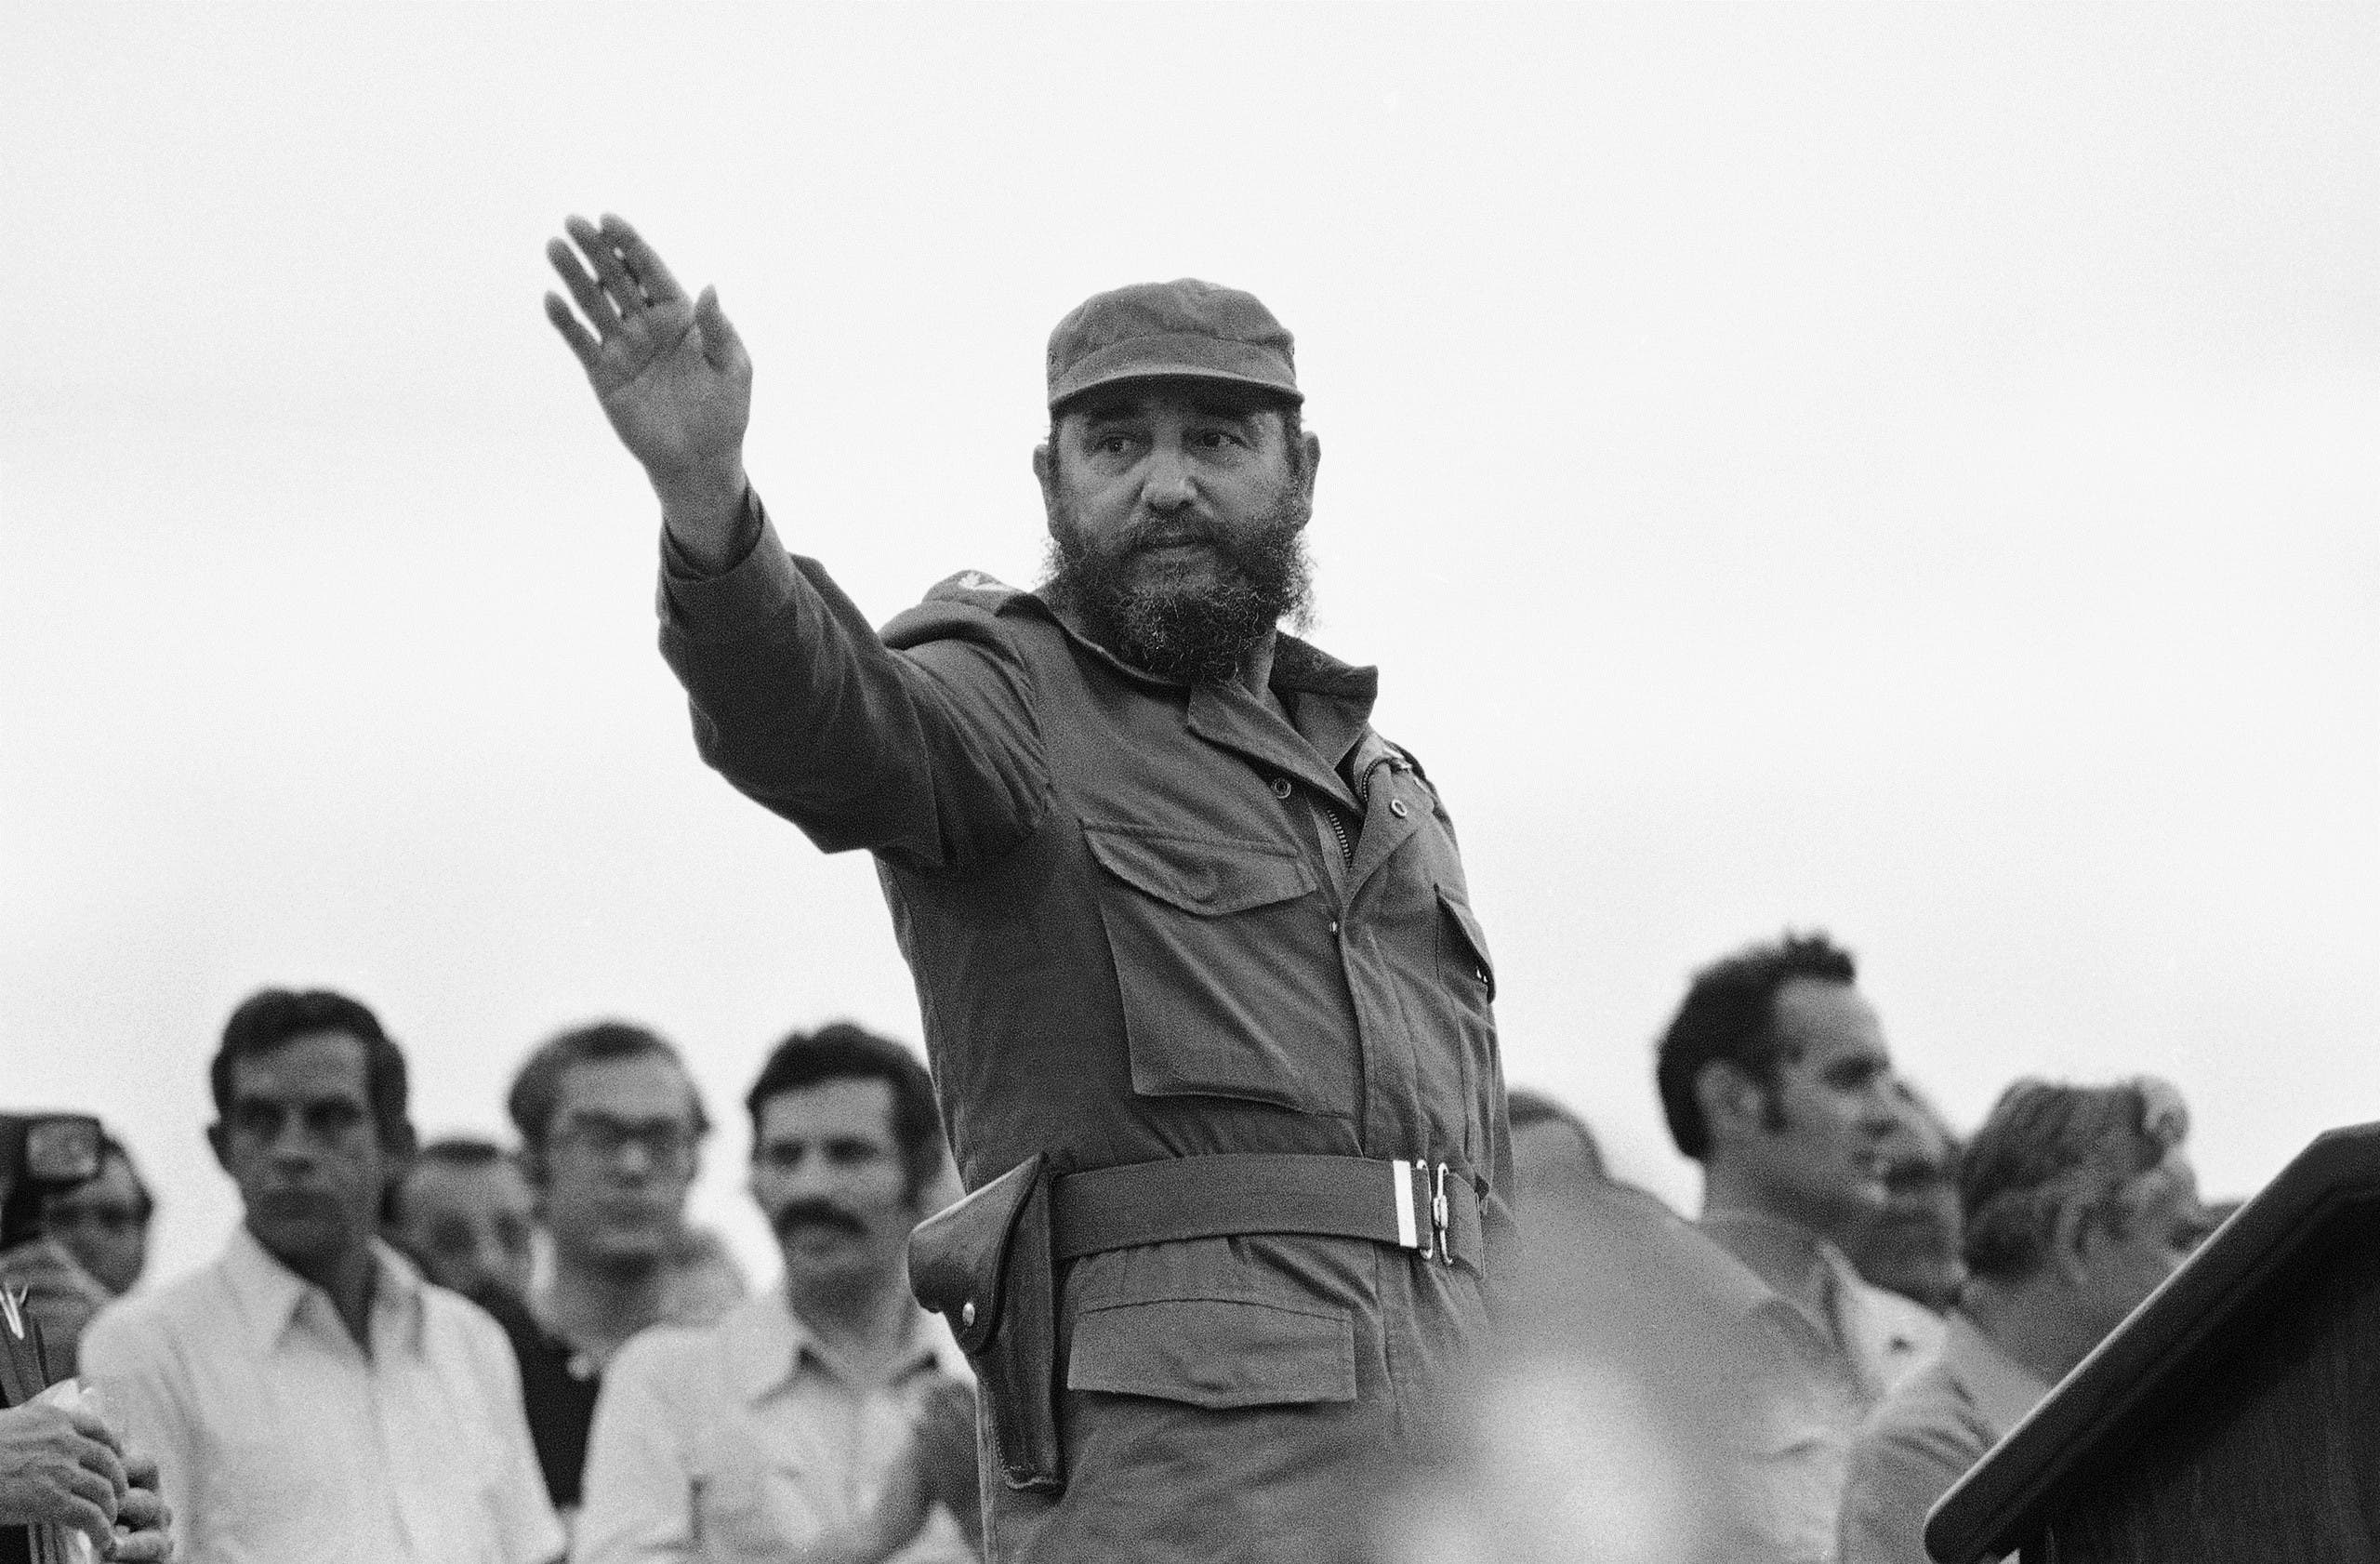 Cuban President Fidel Castro waves to Cubans and participants of the 11th Youth Festival, after his speech at Havana's Revolutionary Square, Jose Marti, where the week-long celebration of the Youth Festival came to an end on August 5, 1978 in Havana, Cuba. (AP)